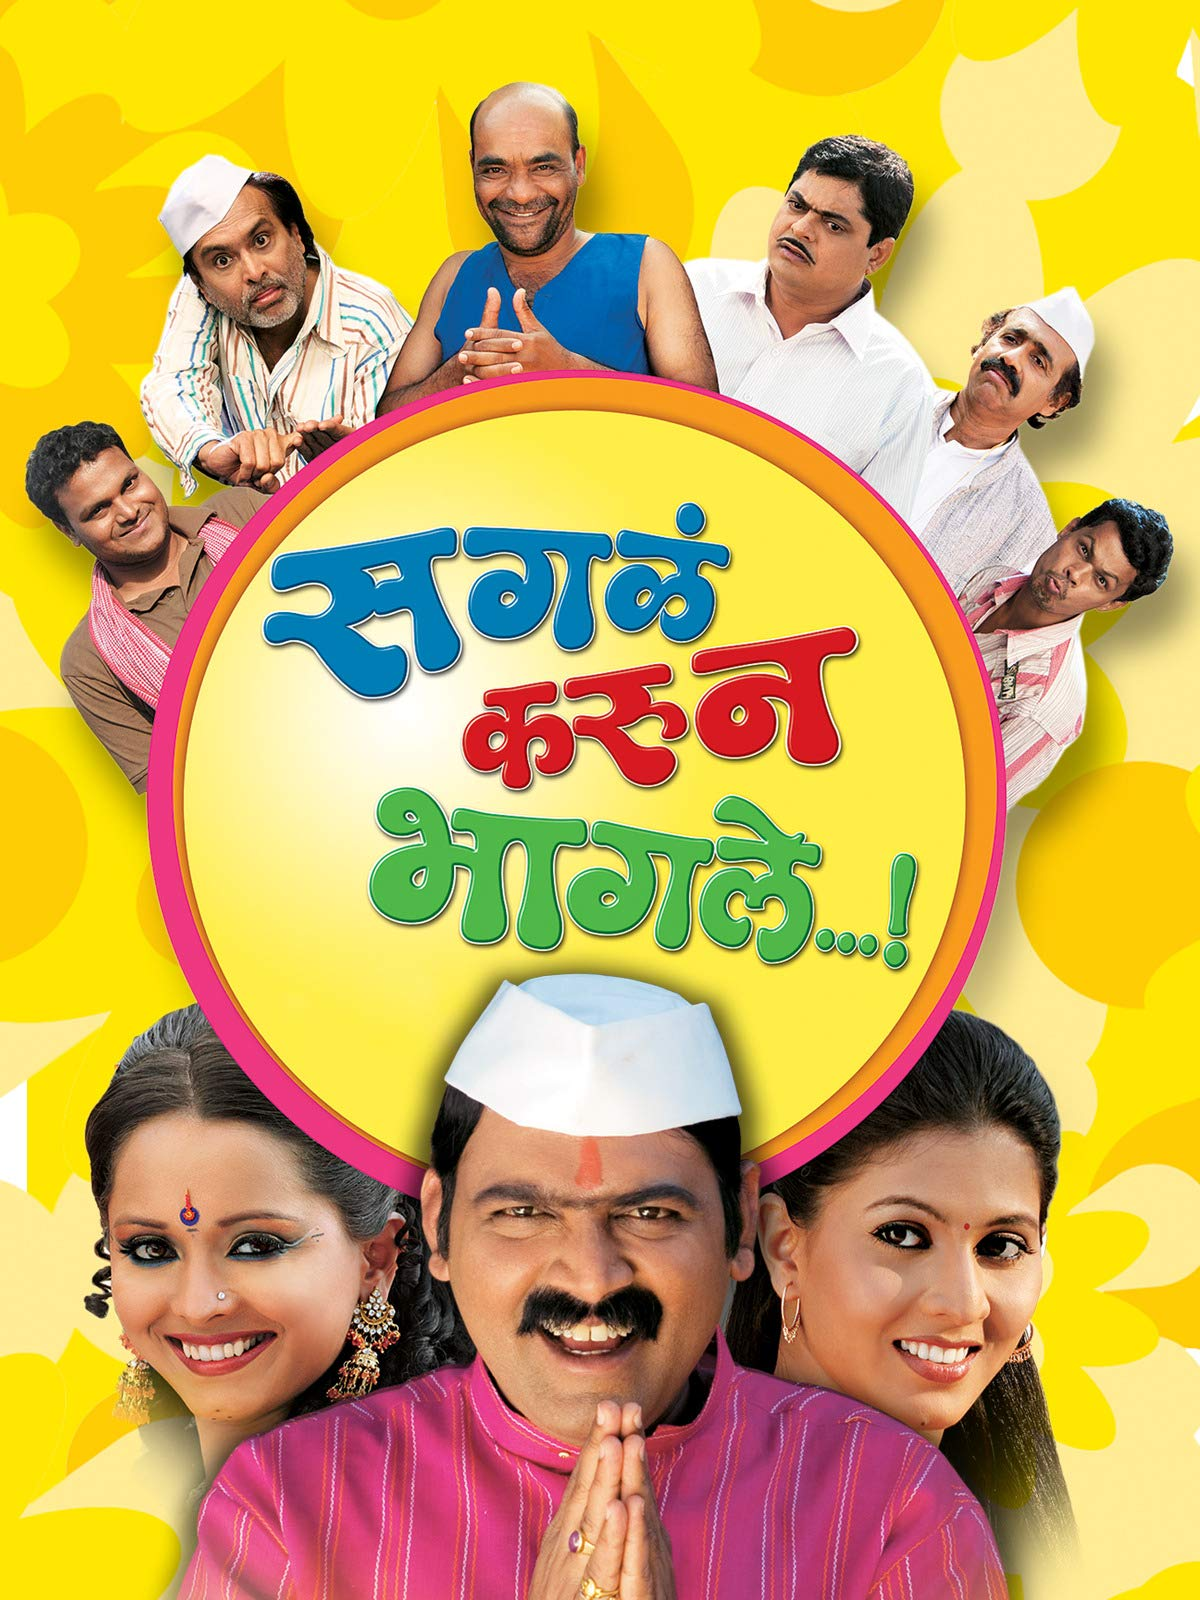 Sagla Karun Bhagle on Amazon Prime Video UK